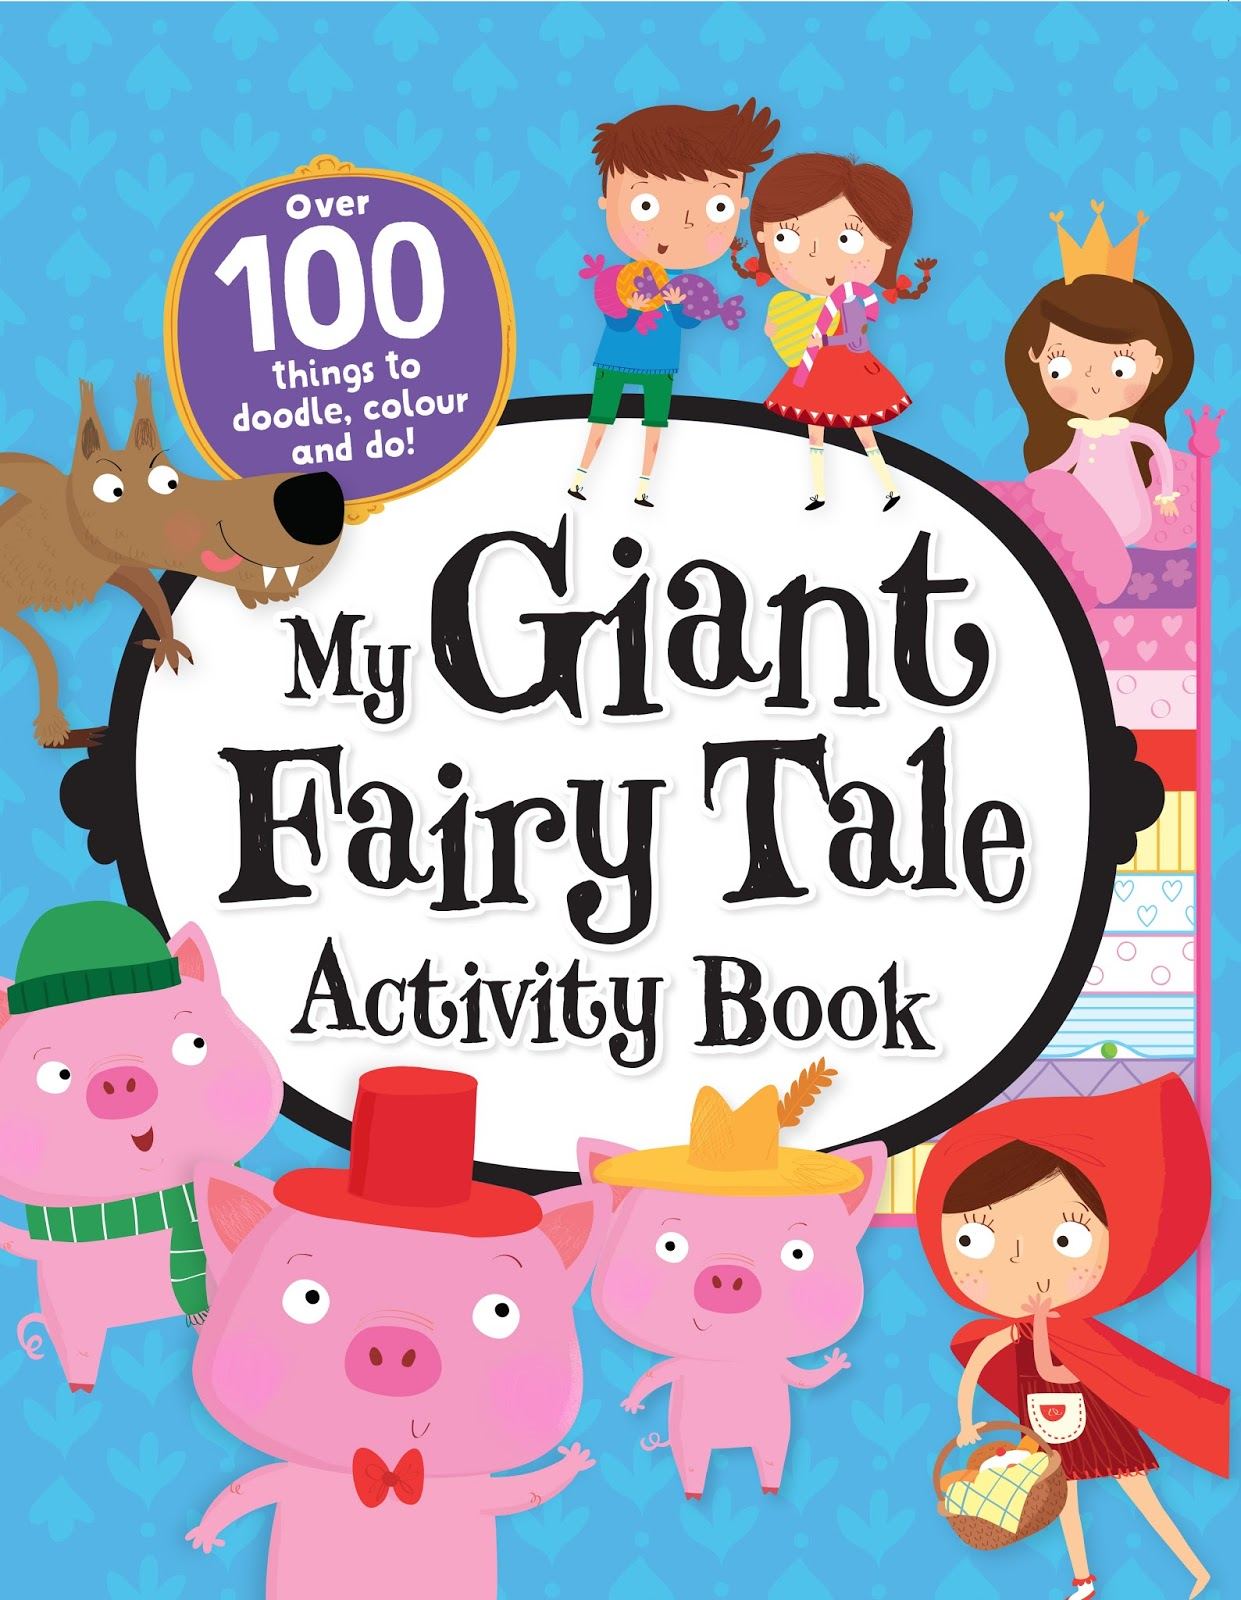 Mellow Mummy: Fairy Tale Activity Book Review : Taking life